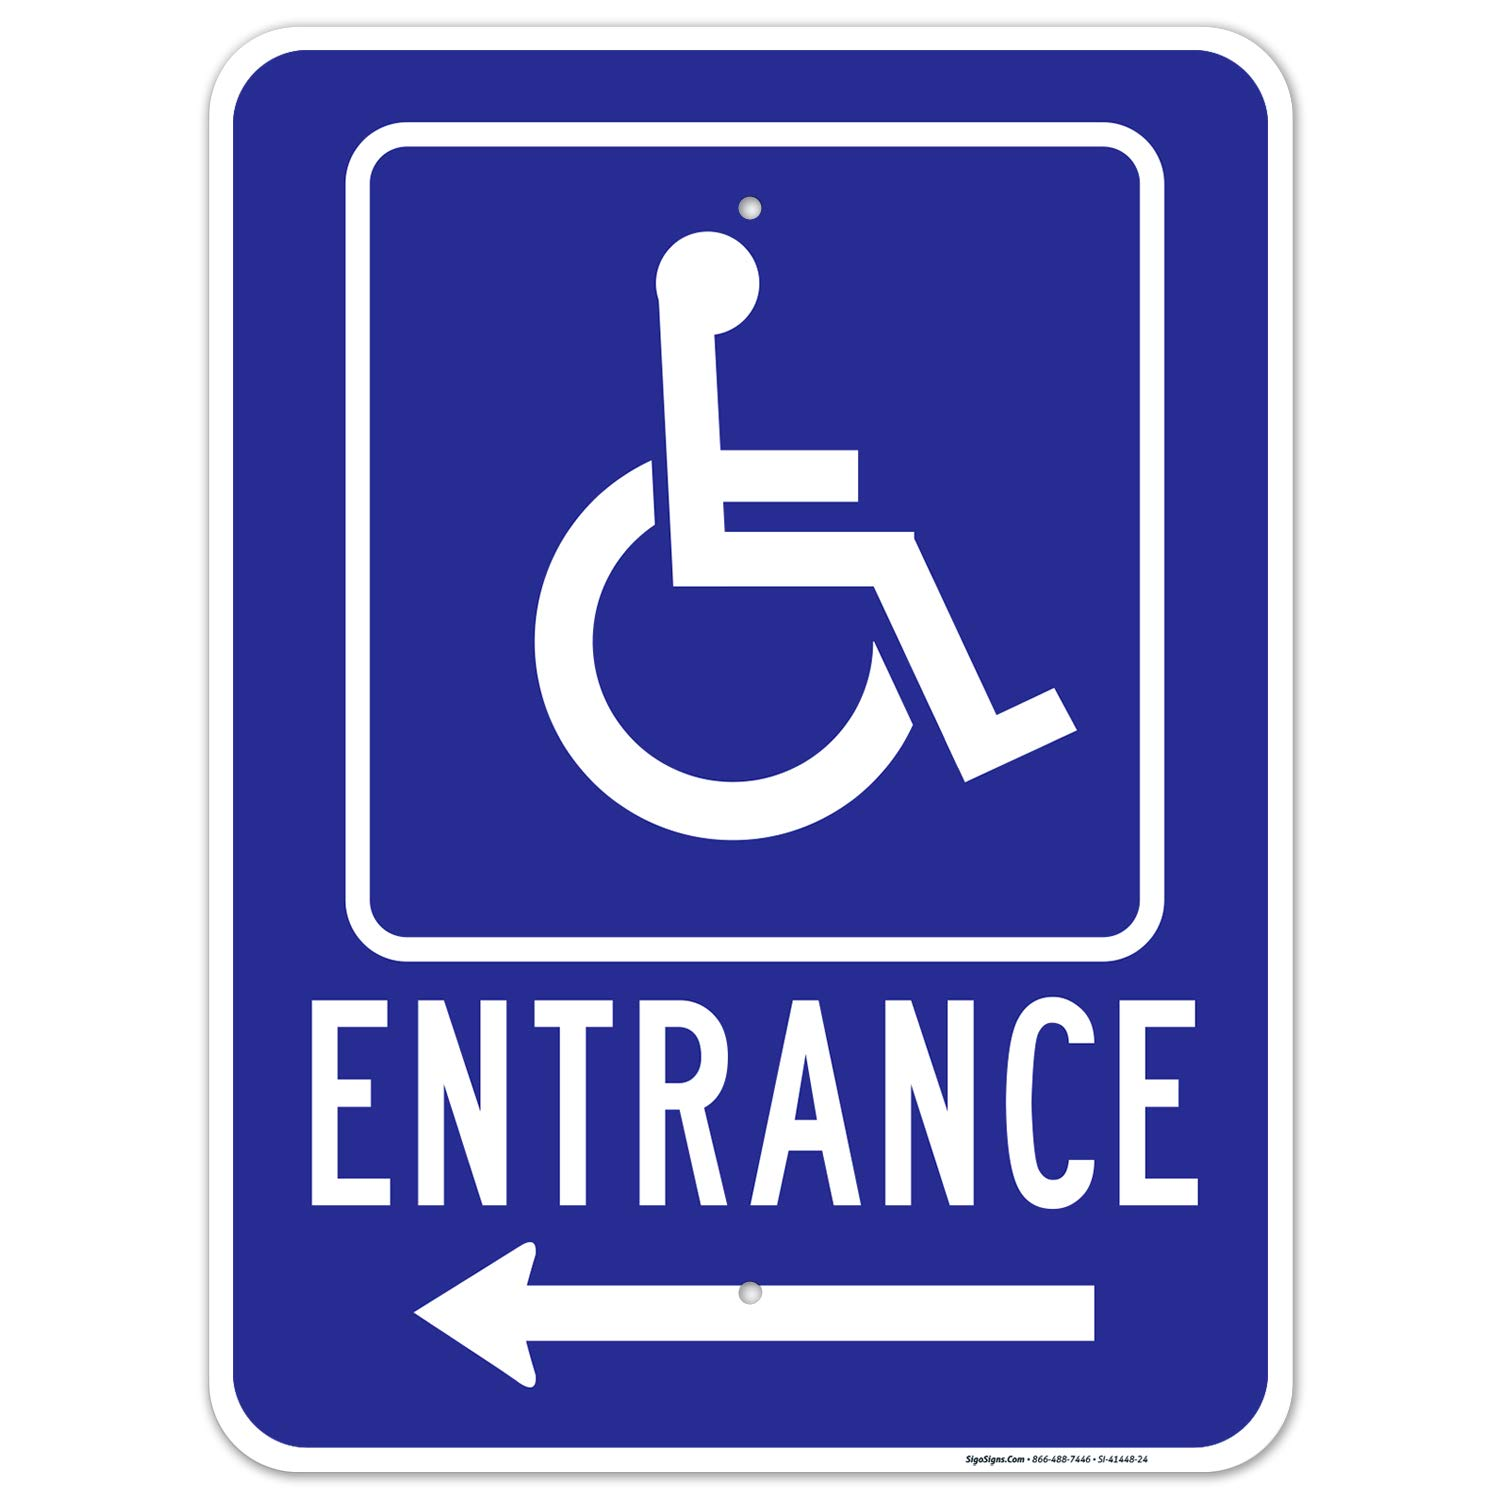 wholesale Left Arrow Handicap Entrance Sign Inventory cleanup selling sale Inches Free .063 18x24 Rust